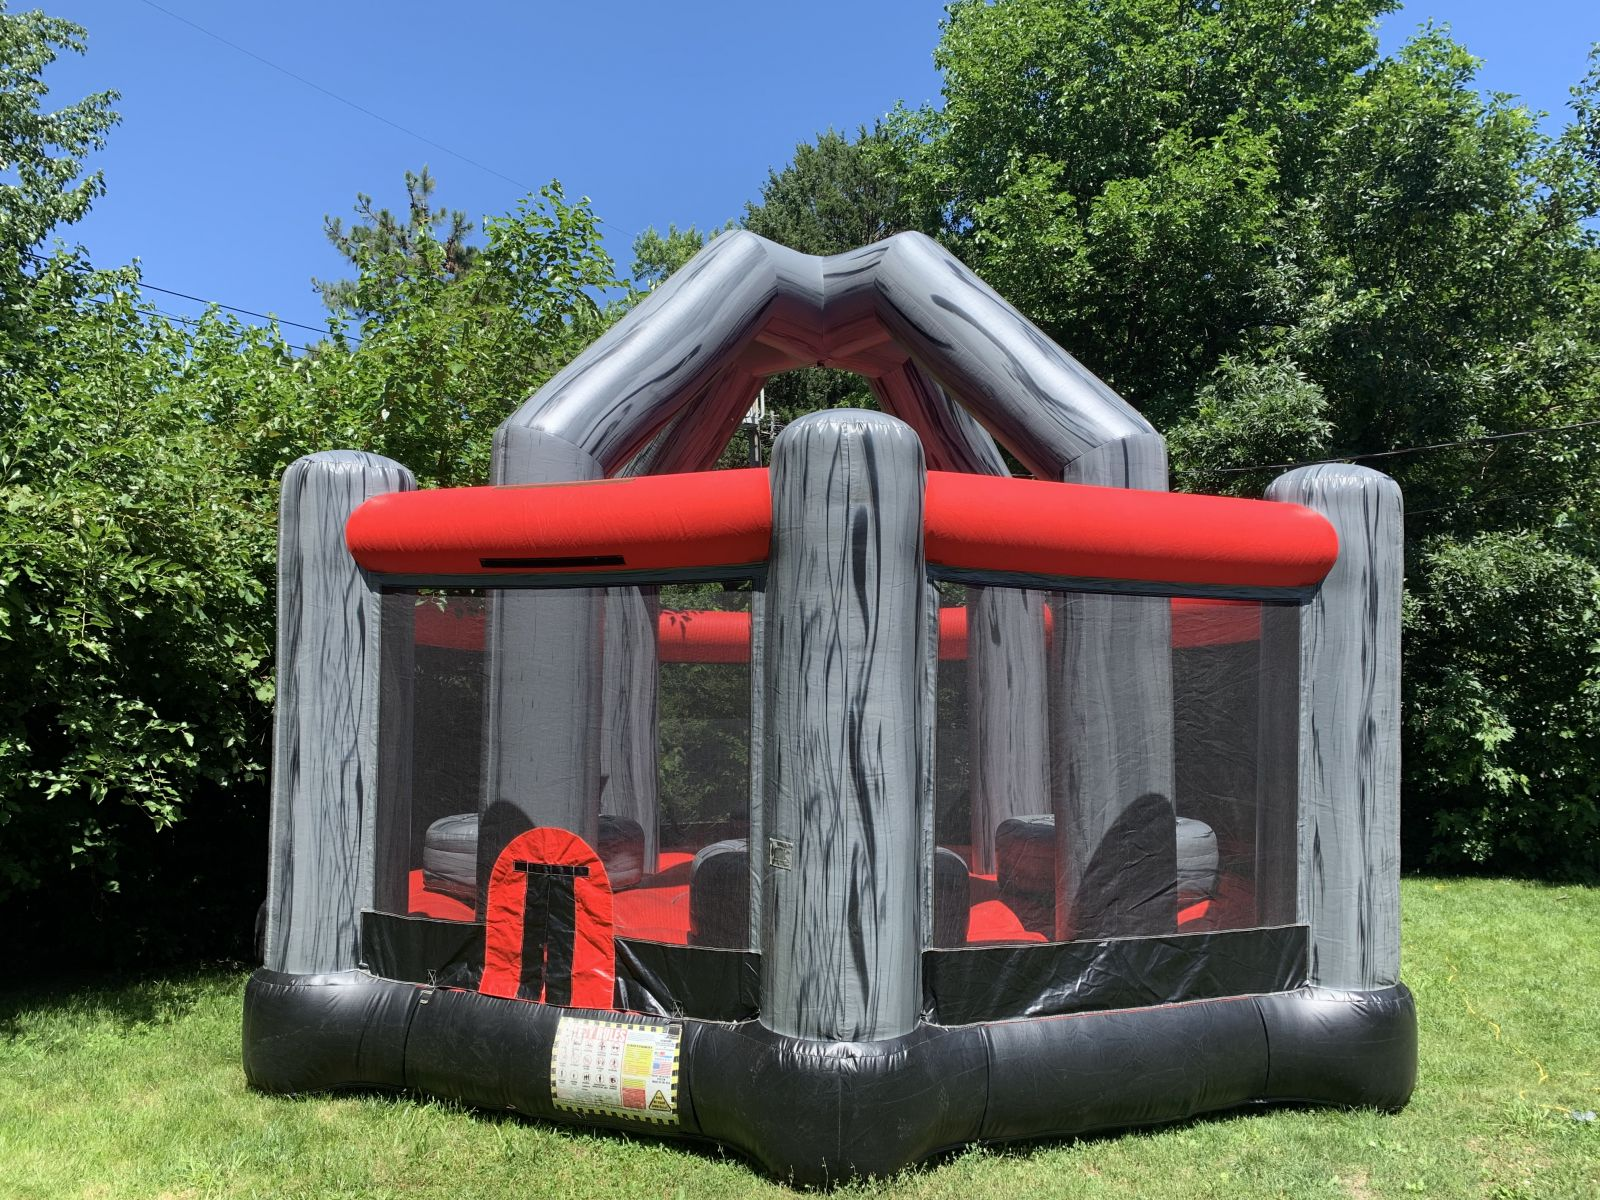 Inflatable obstacle challenge game.